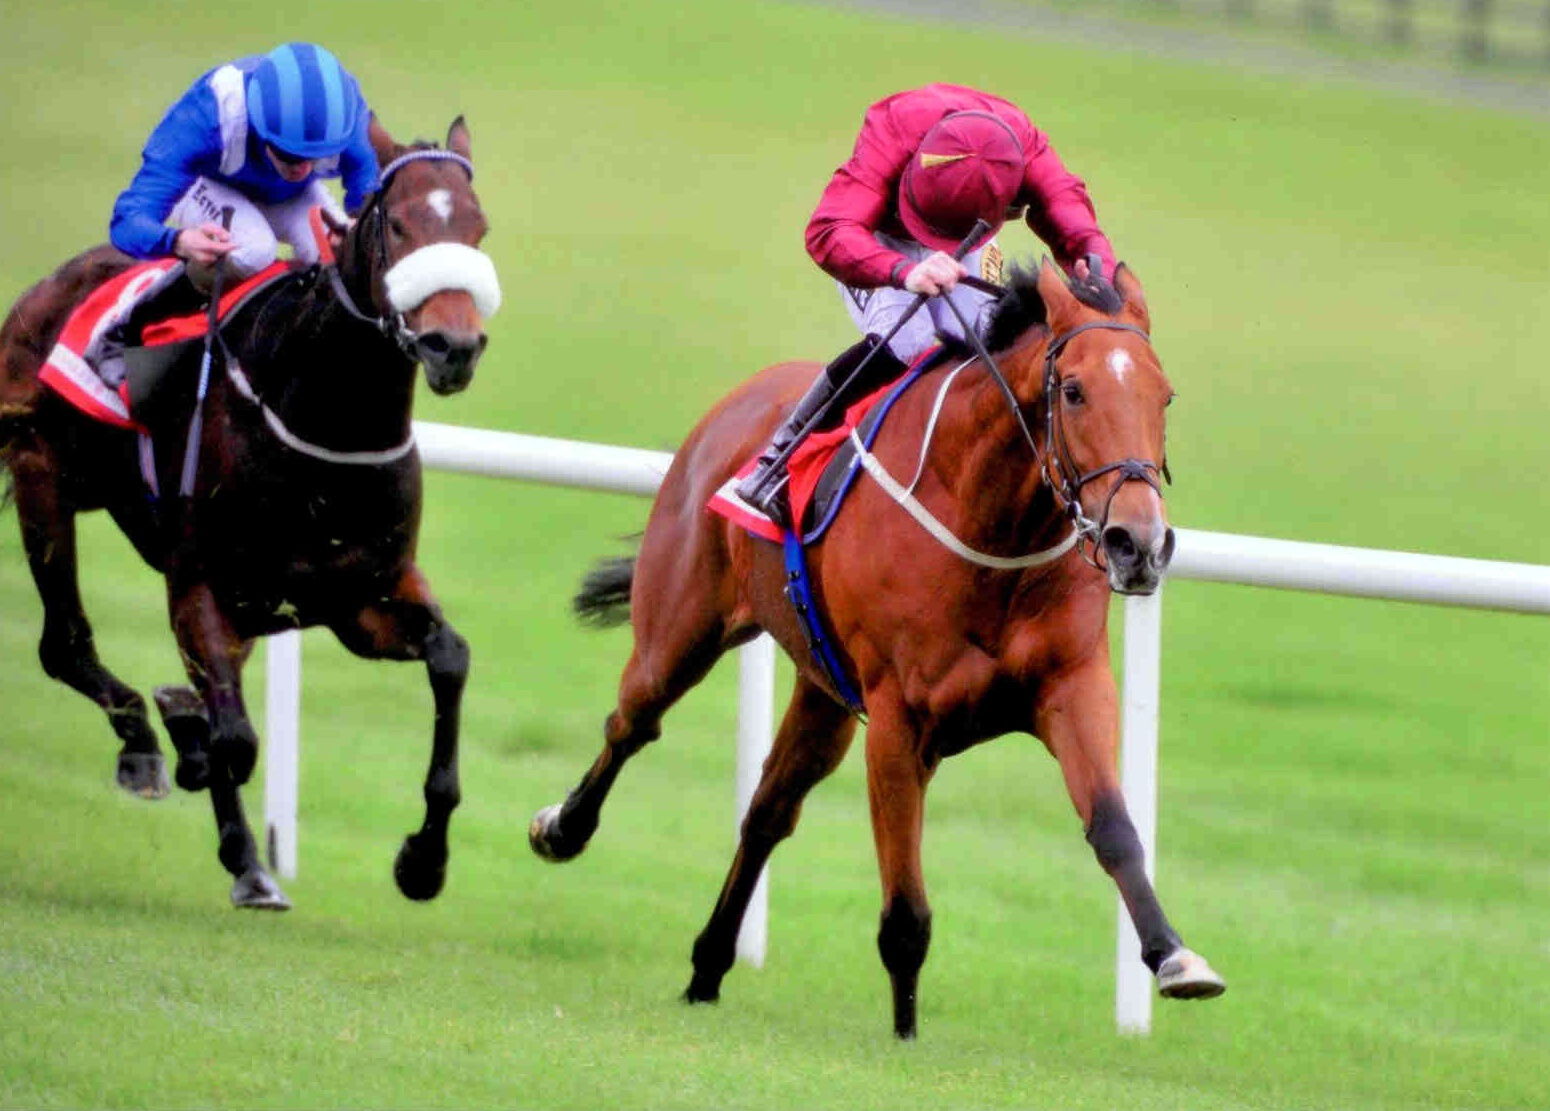 QUEEN CATRINE wins the Garnet Stakes (Listed) at Naas on October 18th 2015 under Colin Keane